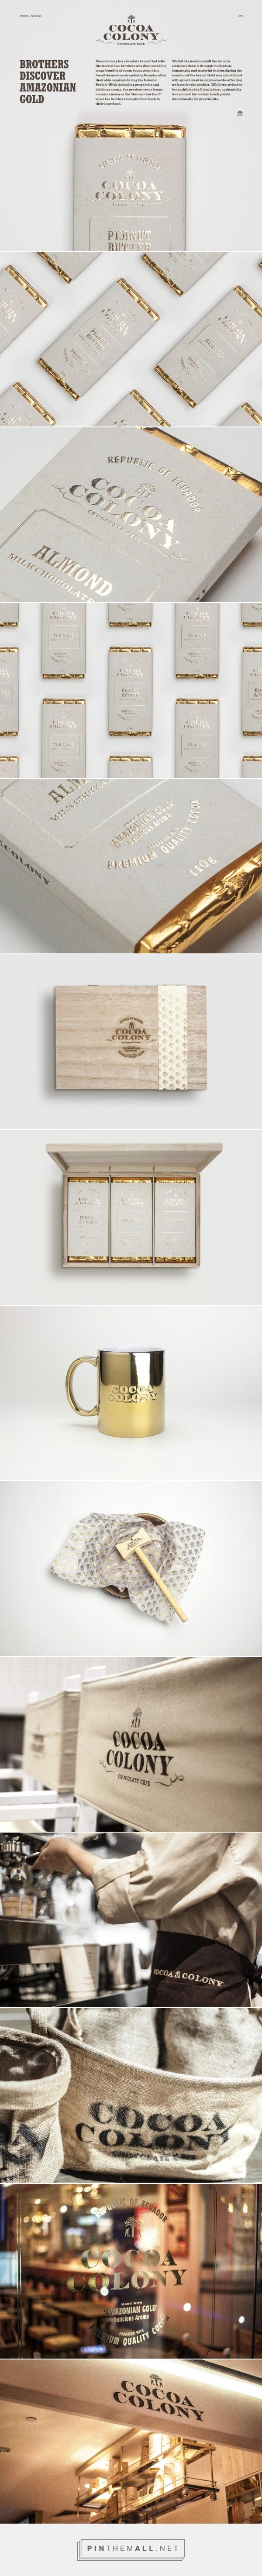 Cocoa Colony Chocolate packaging designed by Bravo (Singapore)…